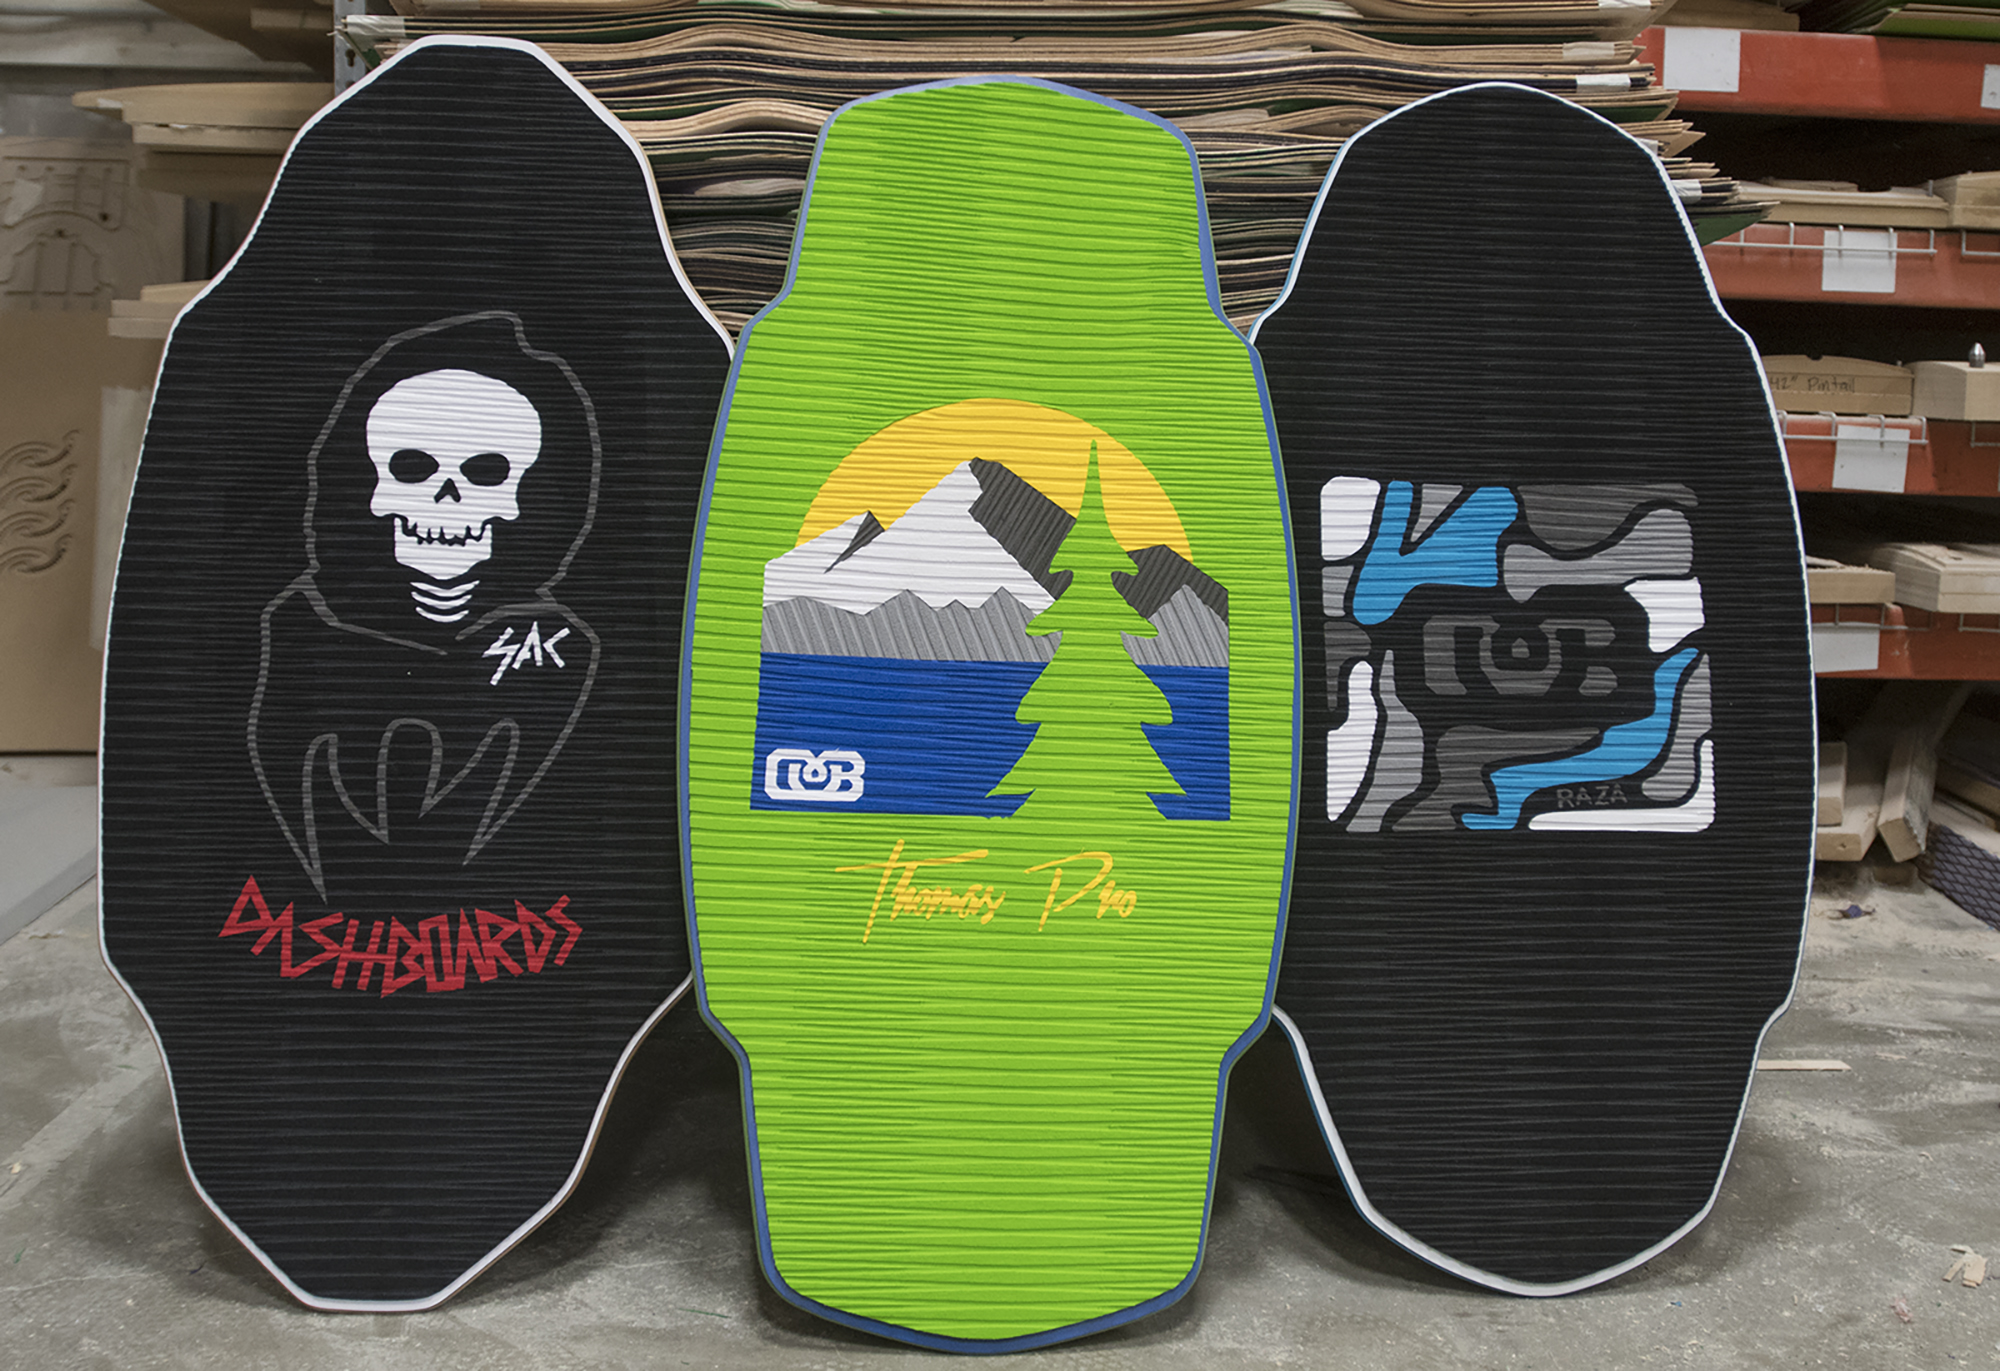 2016 Pro Skimboards Are Here Db Skimboards